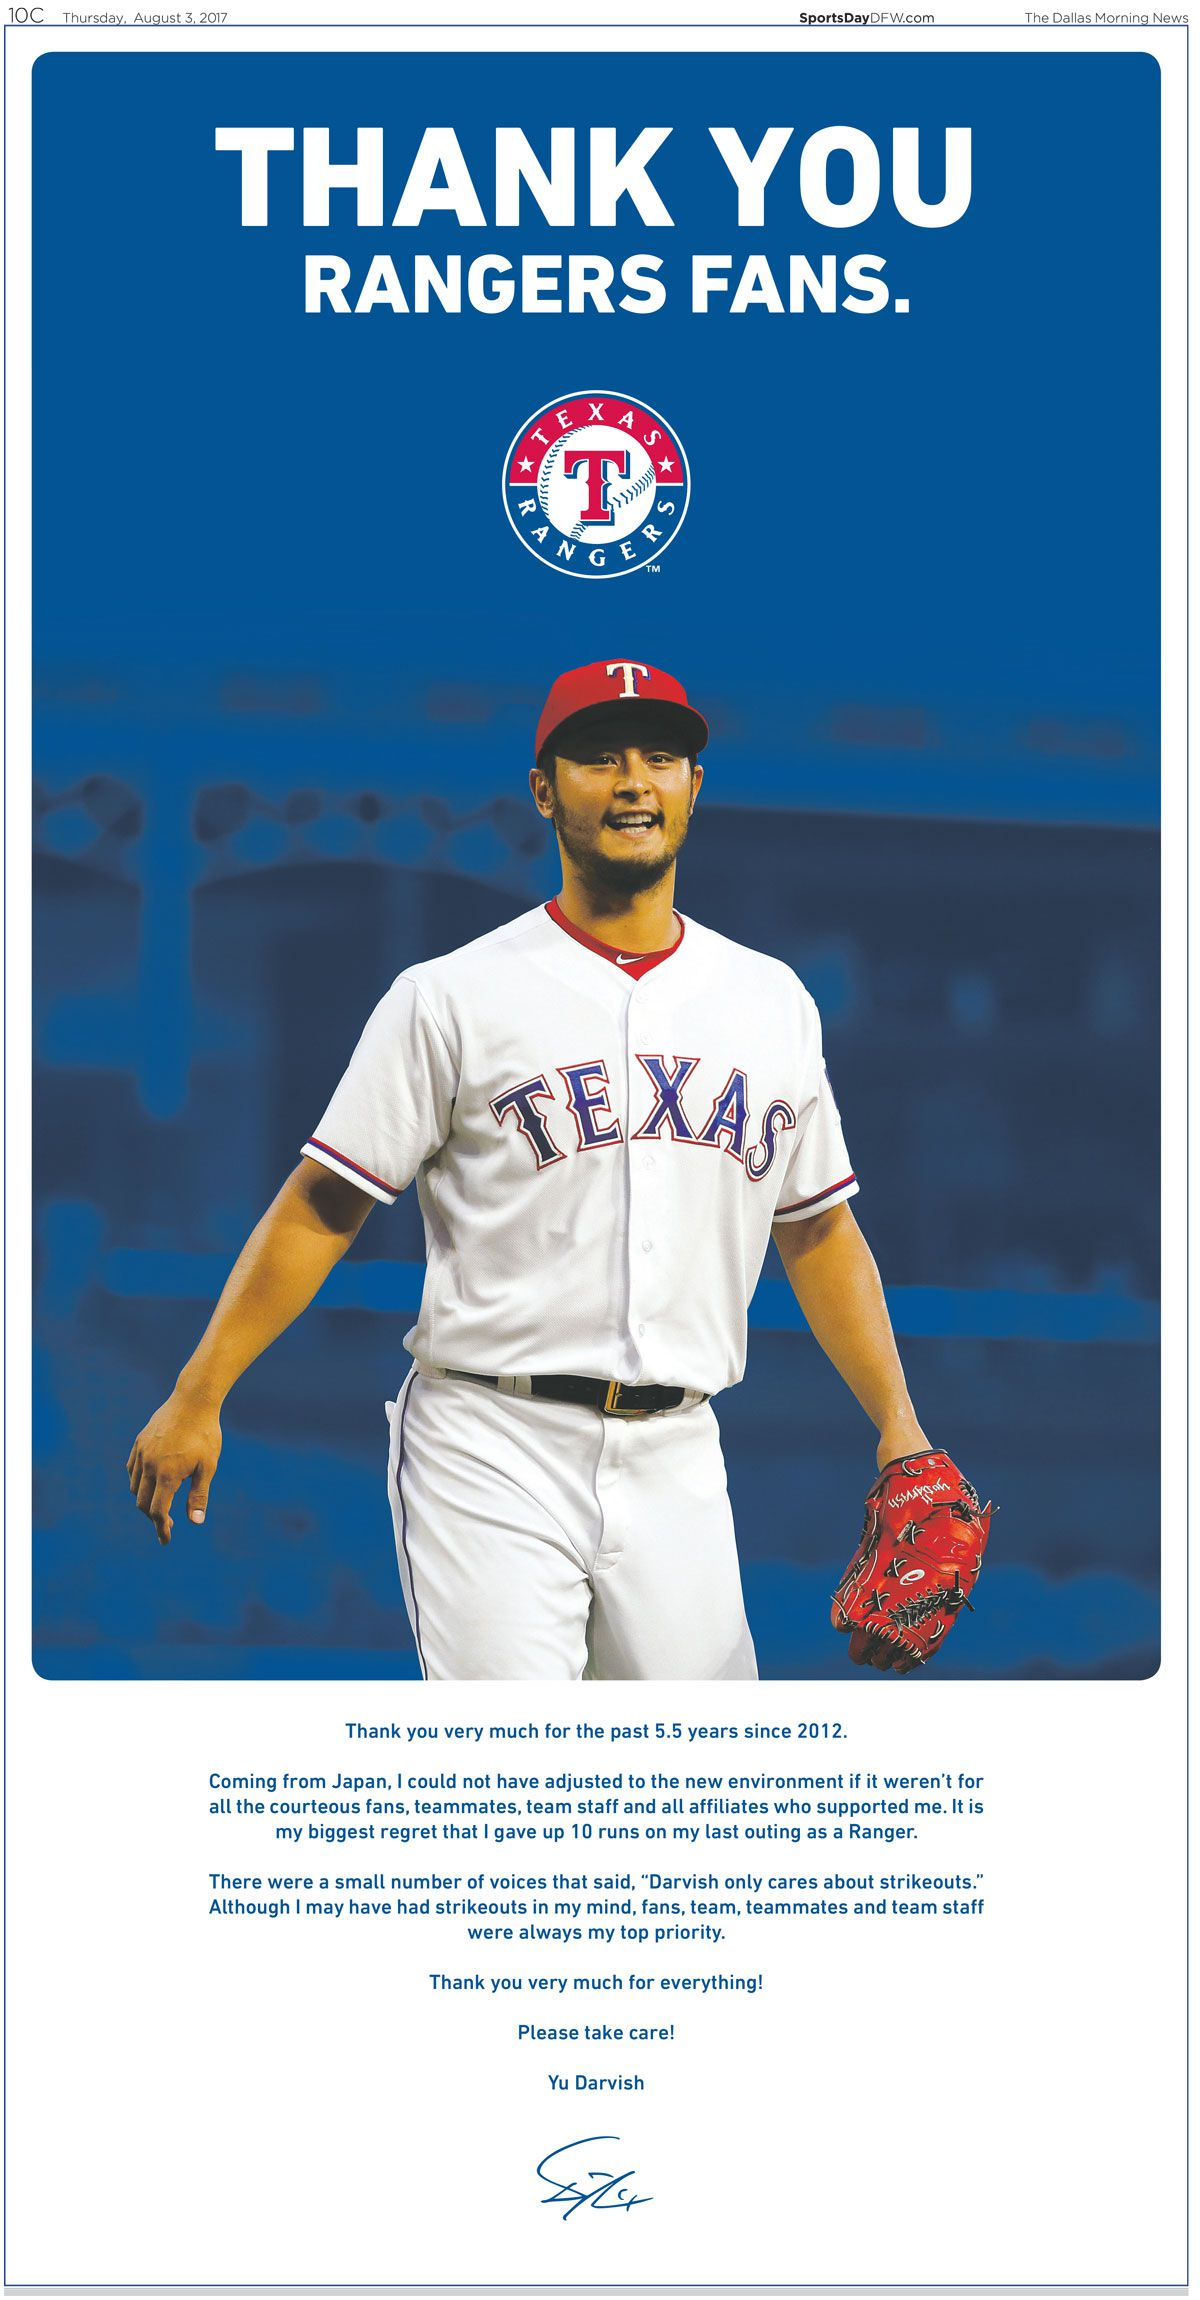 Yu Darvish ad in the Thursday Aug. 3 edition of The Dallas Morning News